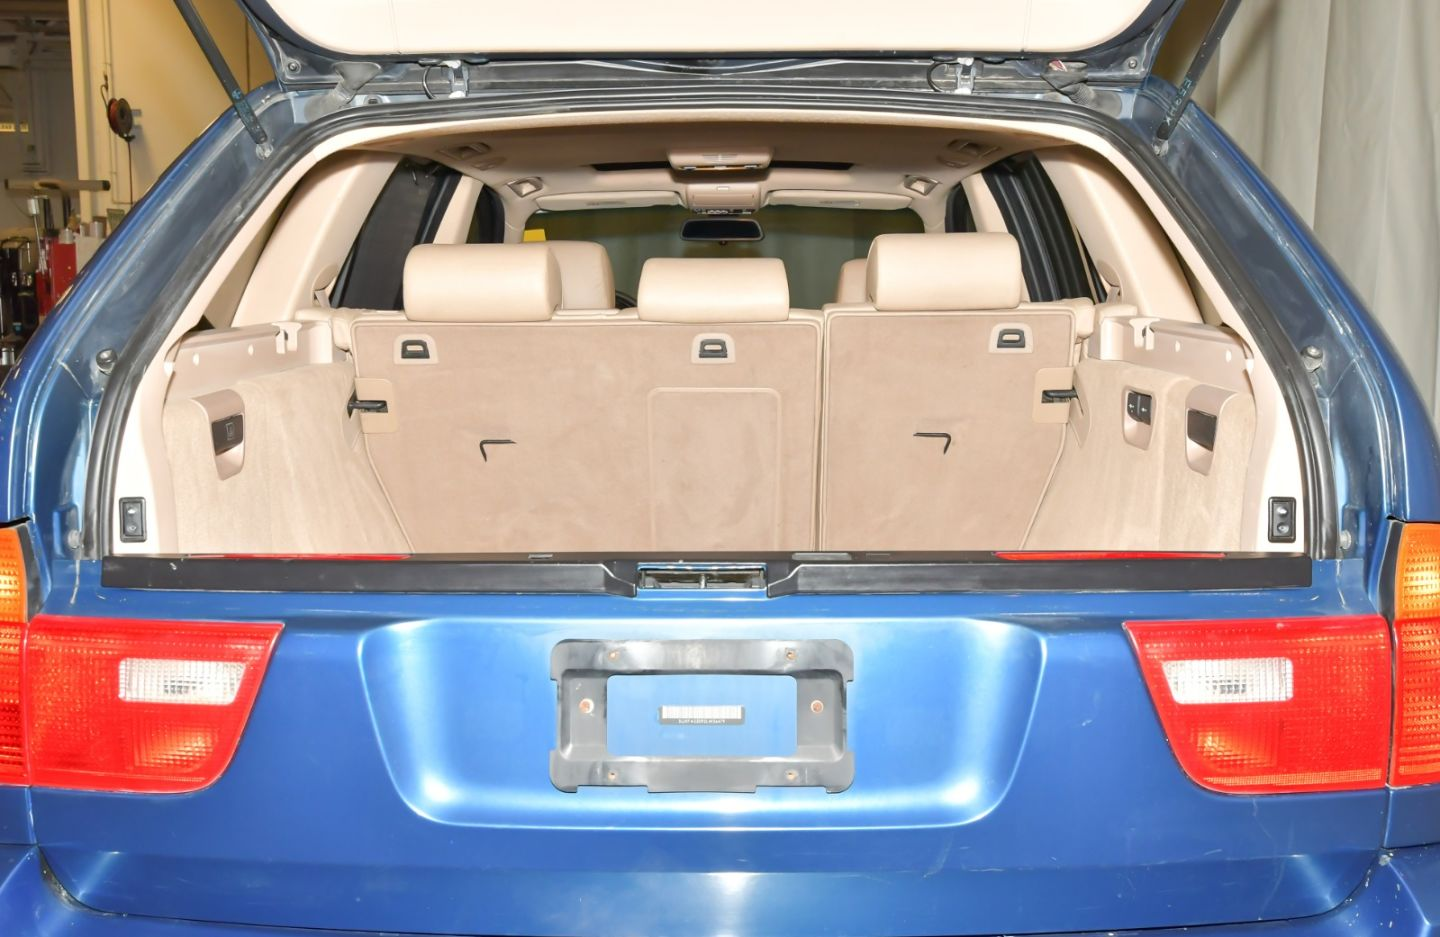 2003 BMW X5 Series 3.0i for sale in Red Deer, Alberta